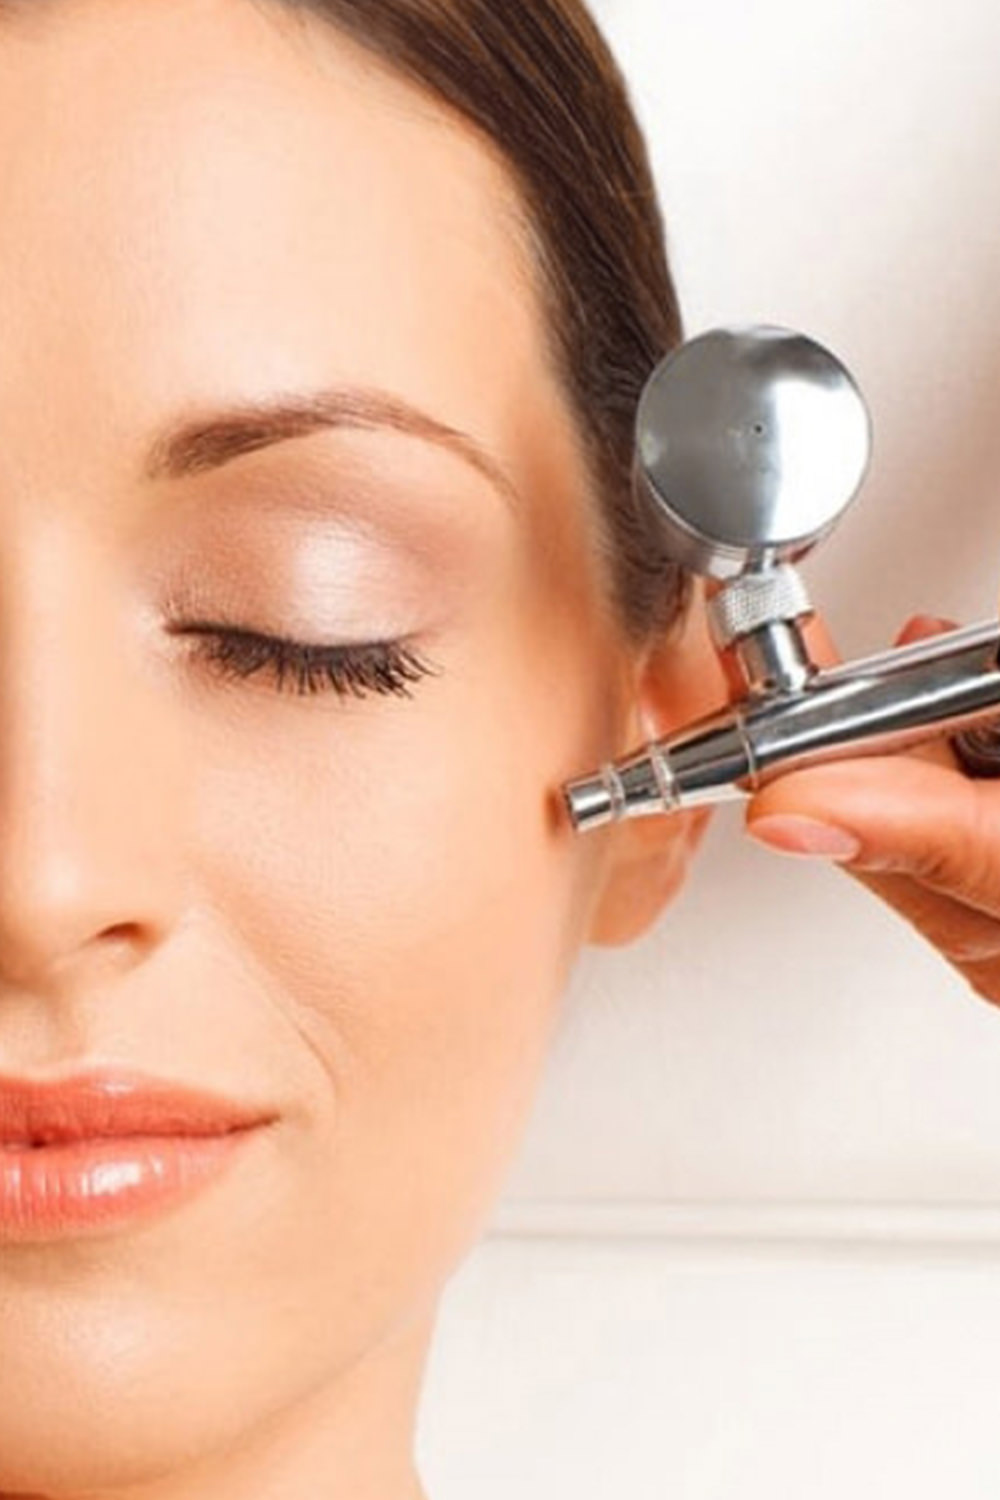 Oxygen Facial - $130Exfoliation, Cleansing, Hydration, and O2 Oxygenation (ECHO2) is a four step skin revitalization procedure that increases elasticity and suppleness through the use of the pure oxygen molecule.